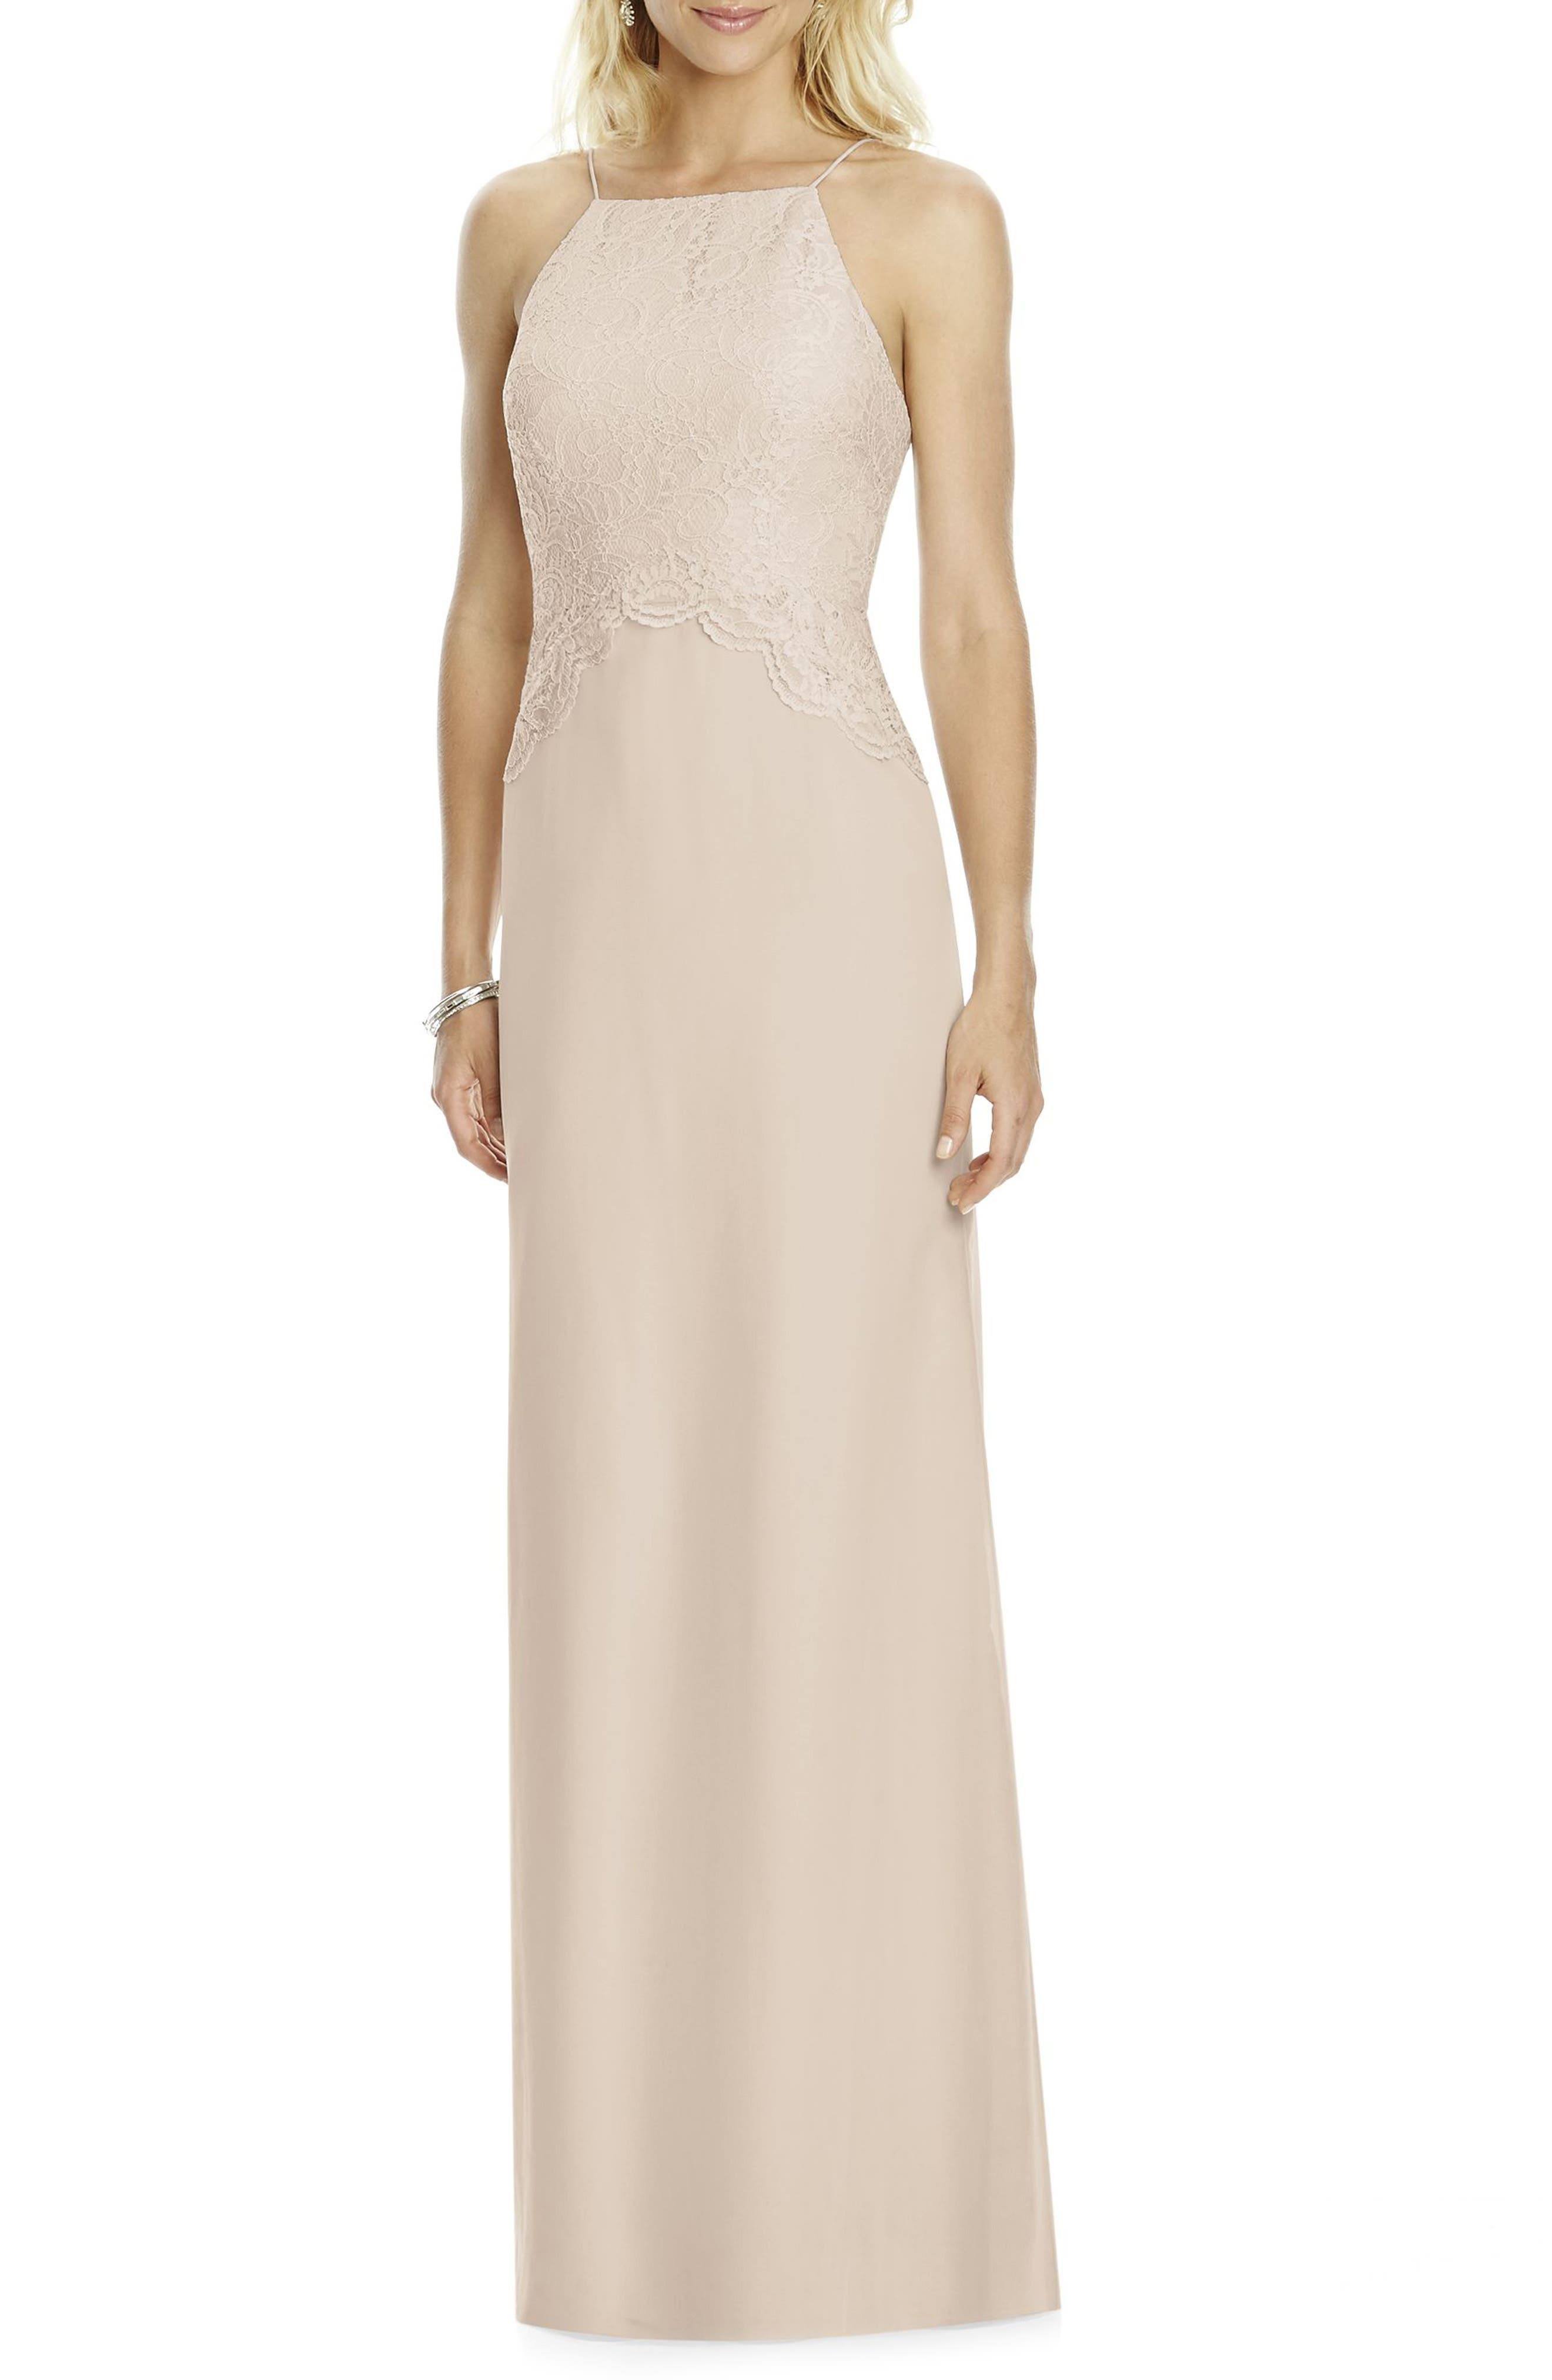 After Six Square Neck Lace & Chiffon Gown, 8 (similar to 1) - Beige